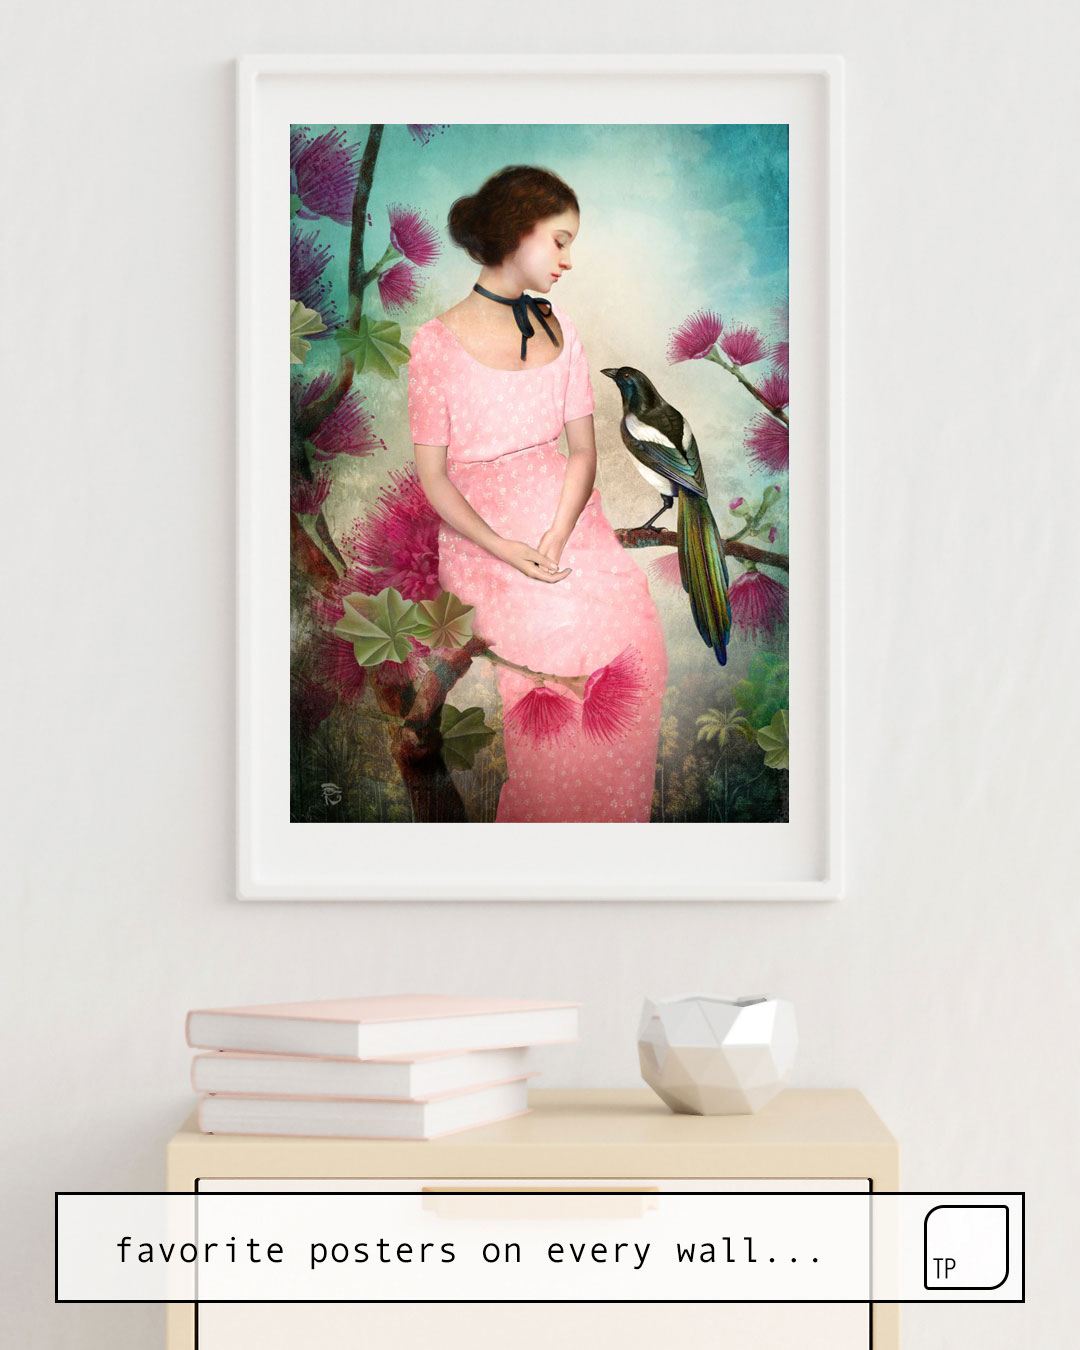 The photo shows an example of furnishing with the motif A DAYDREAM by Christian Schloe as mural